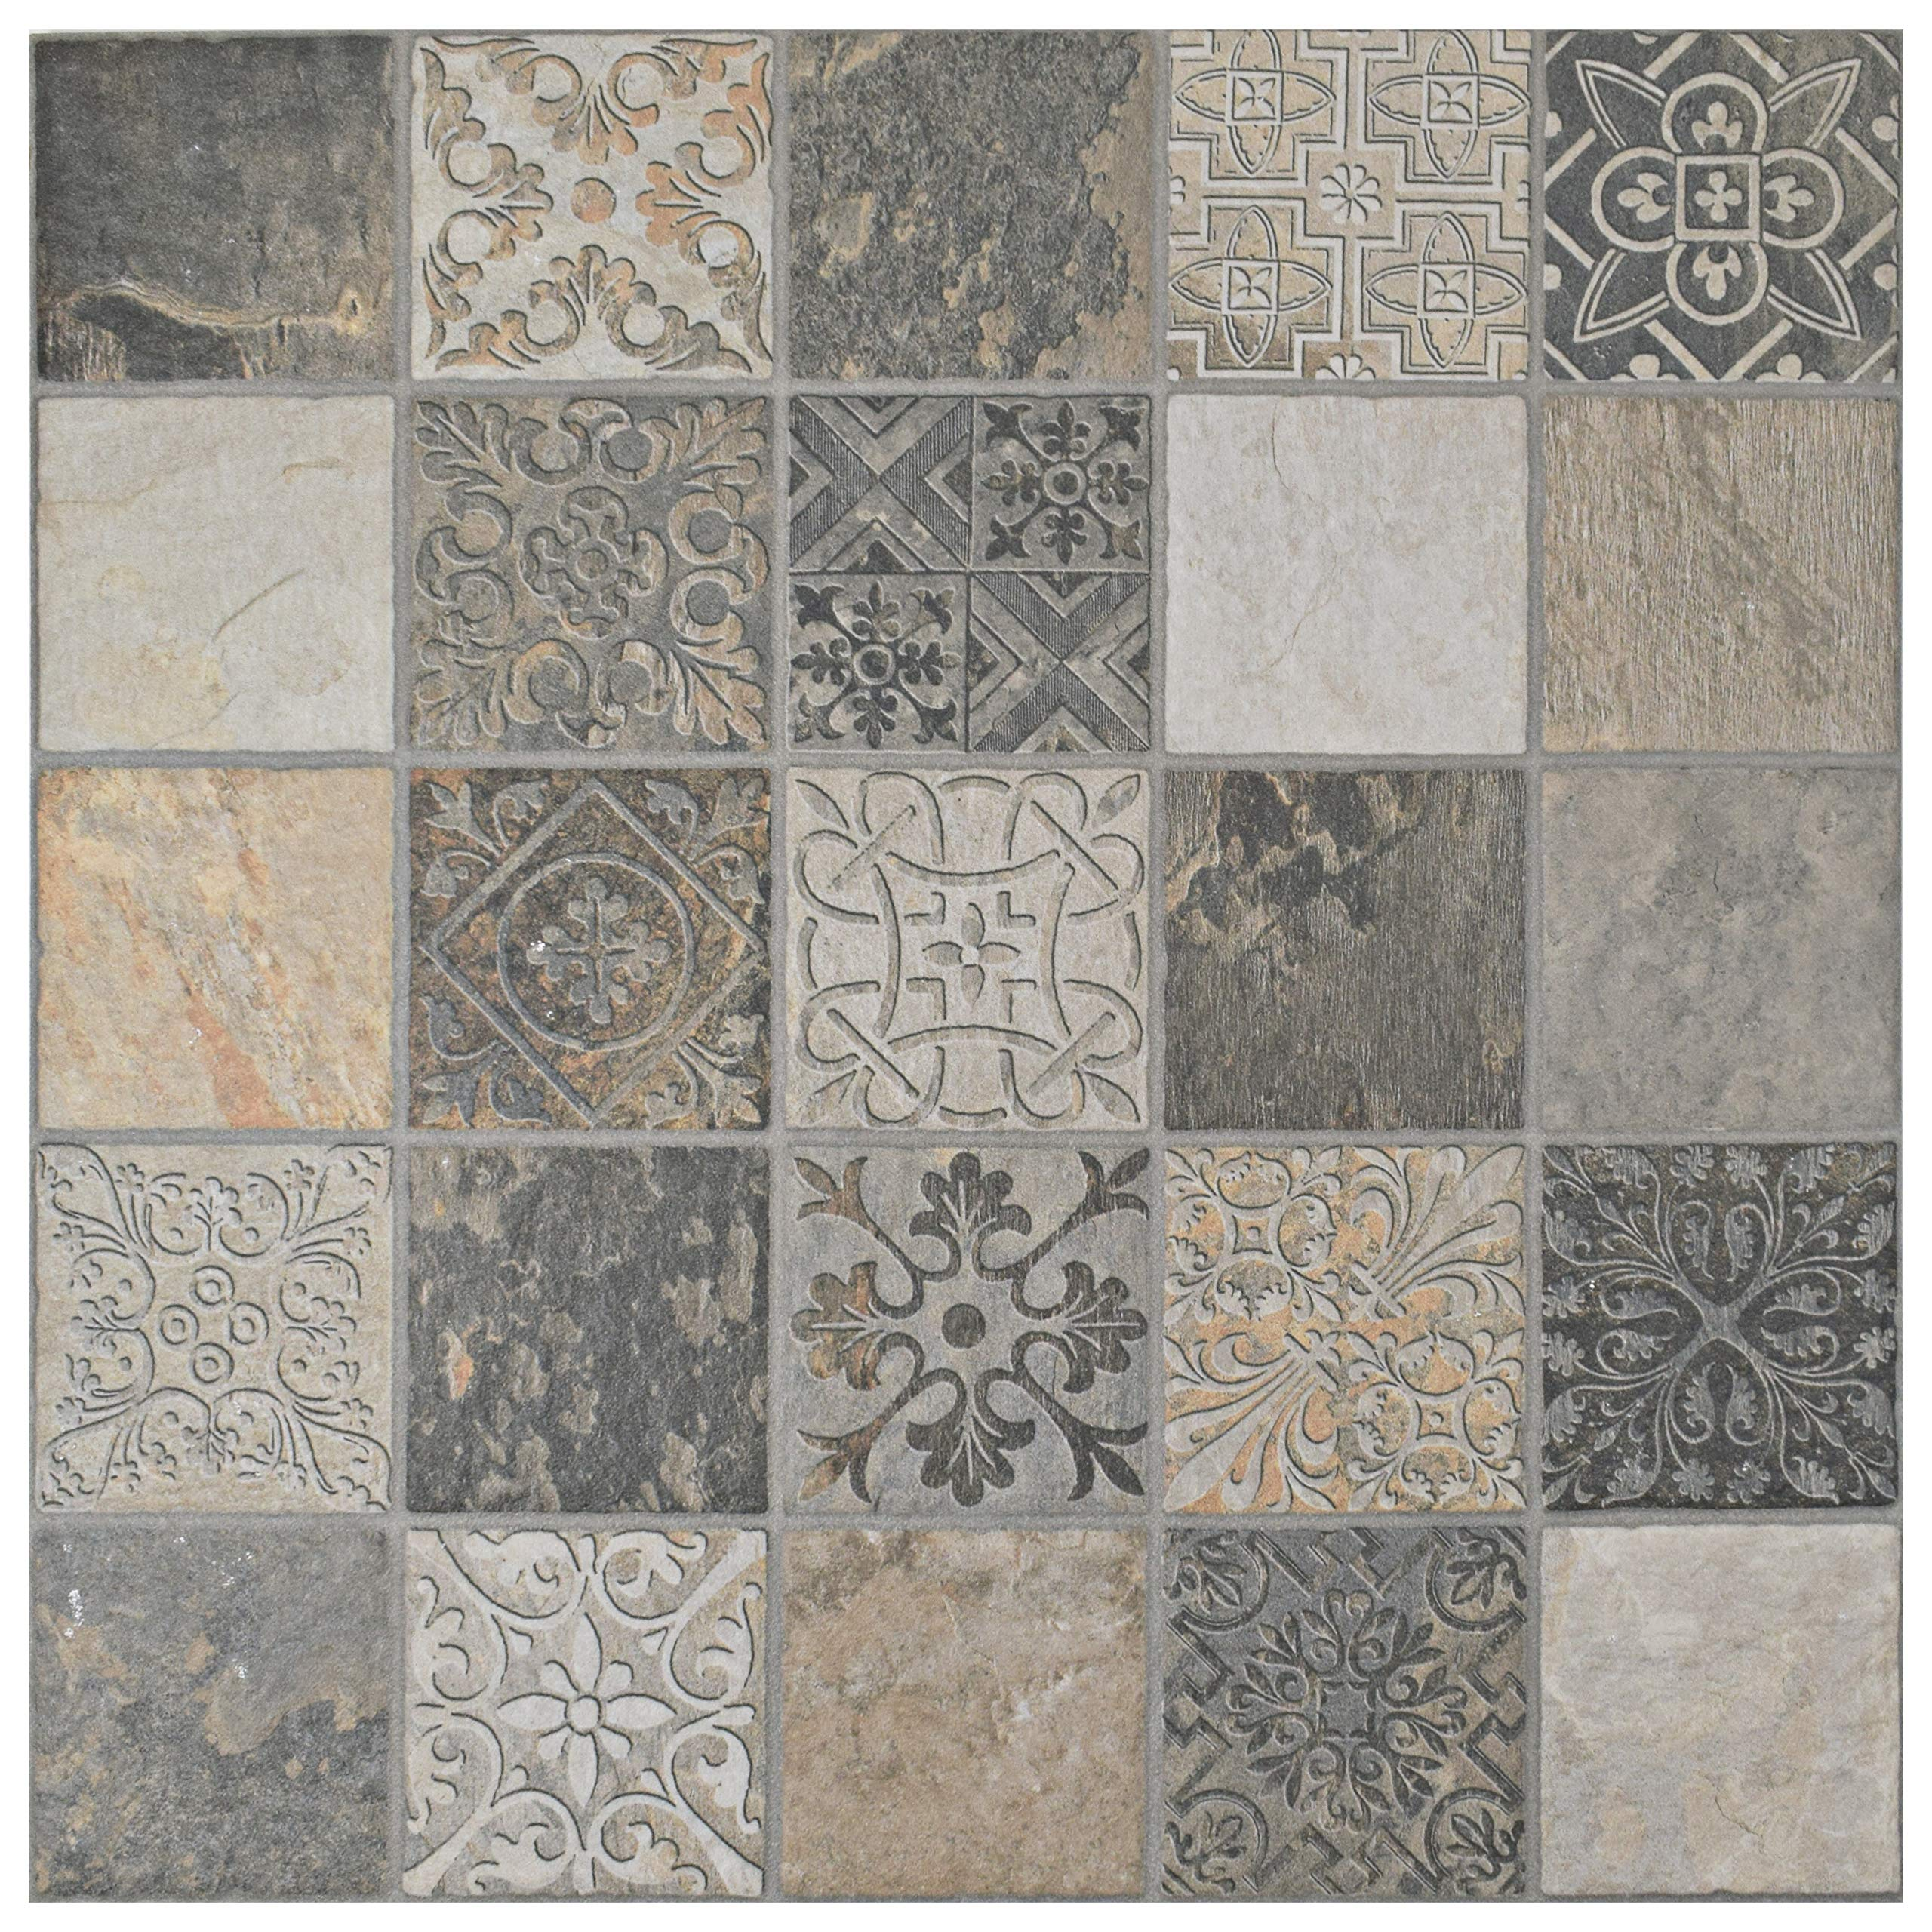 SomerTile FGFDECCA Caldazer Décor Ardesano Porcelain Floor and Wall Tile, 17.5'' x 17.5'', Grey/Beige/White